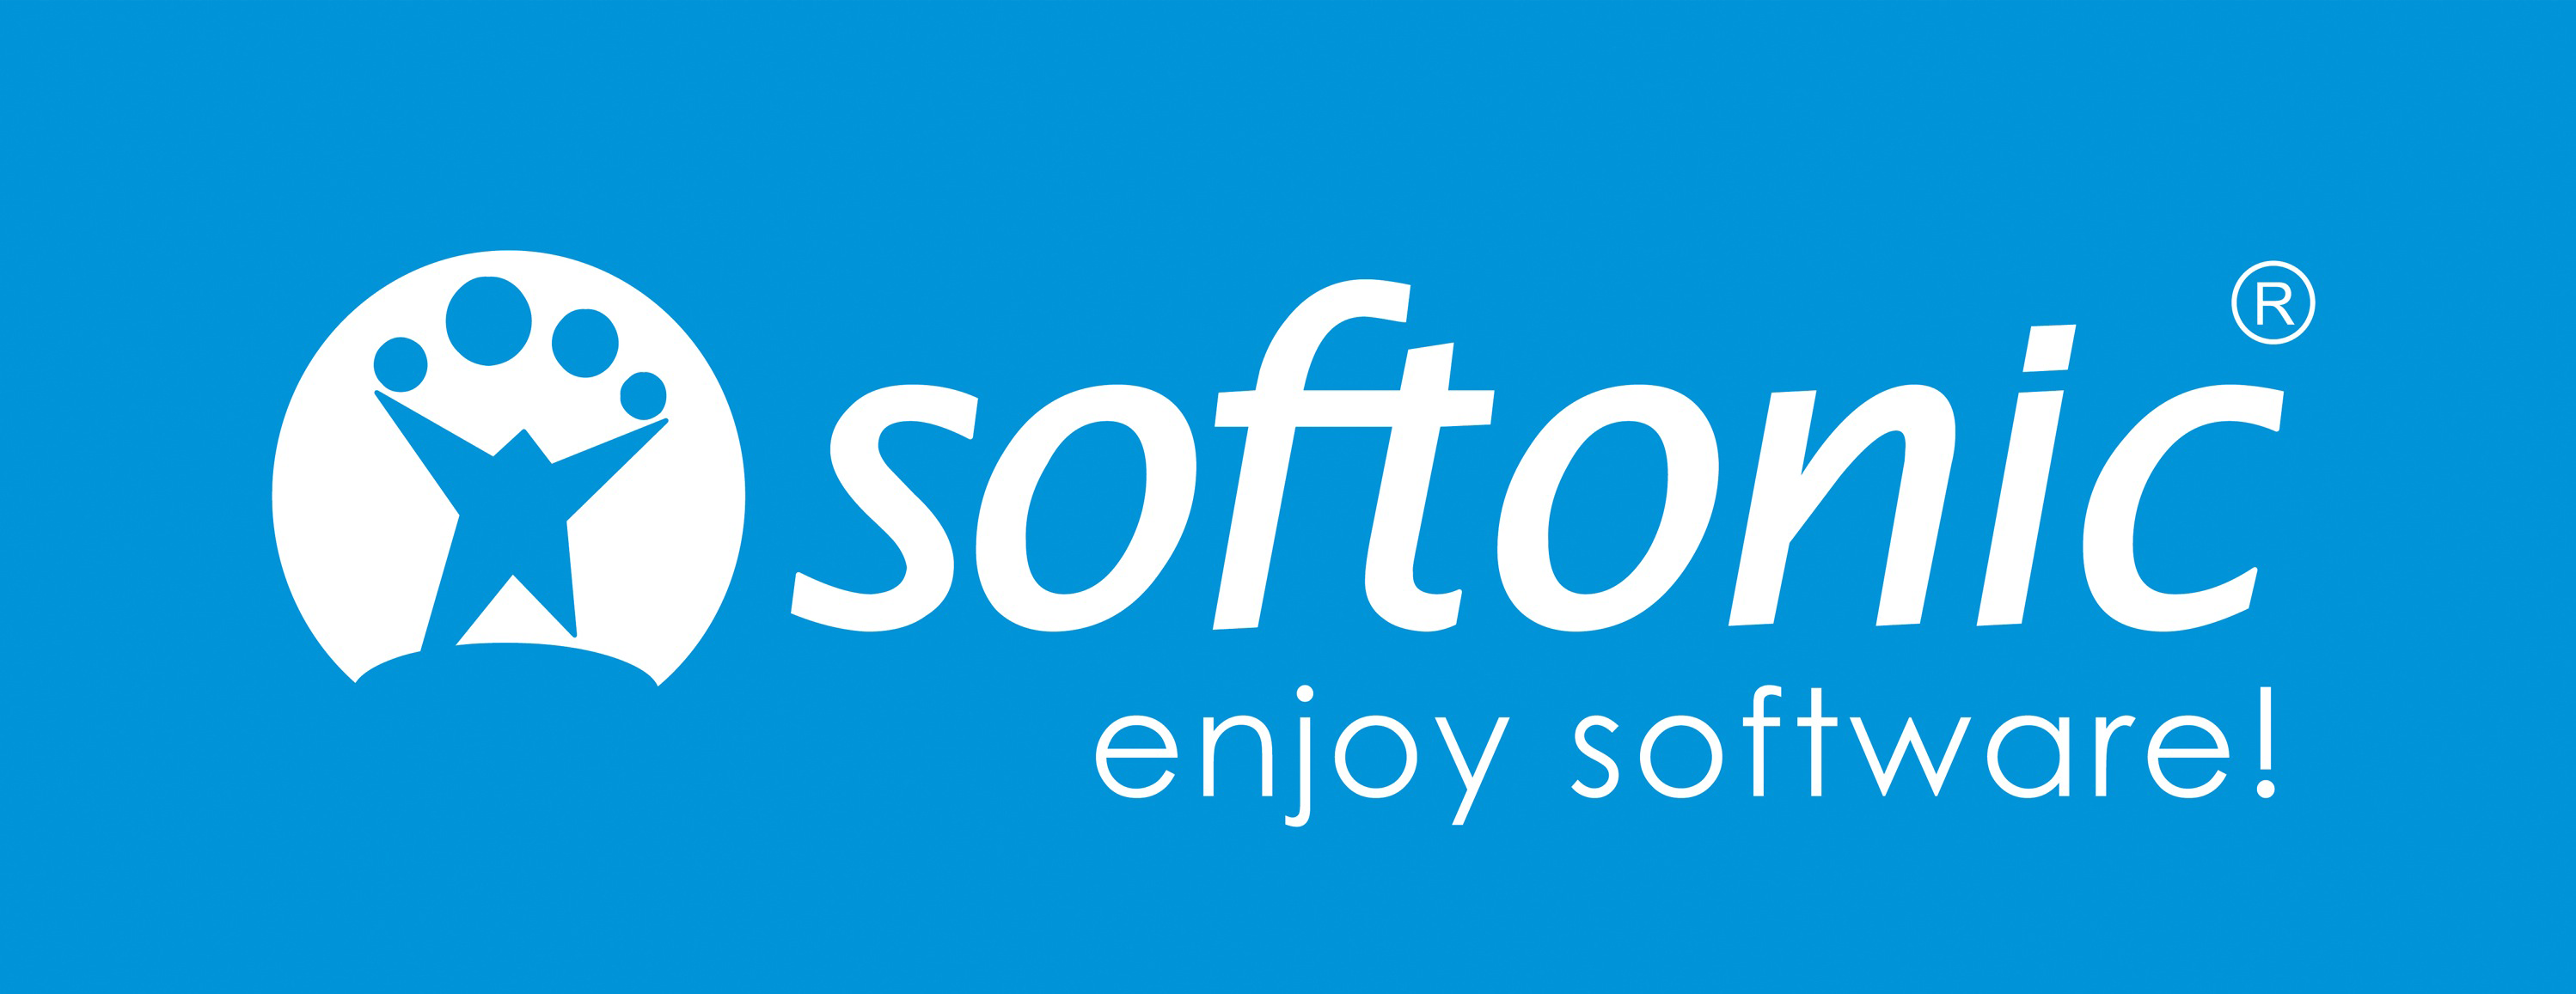 movie maker software for pc softonic